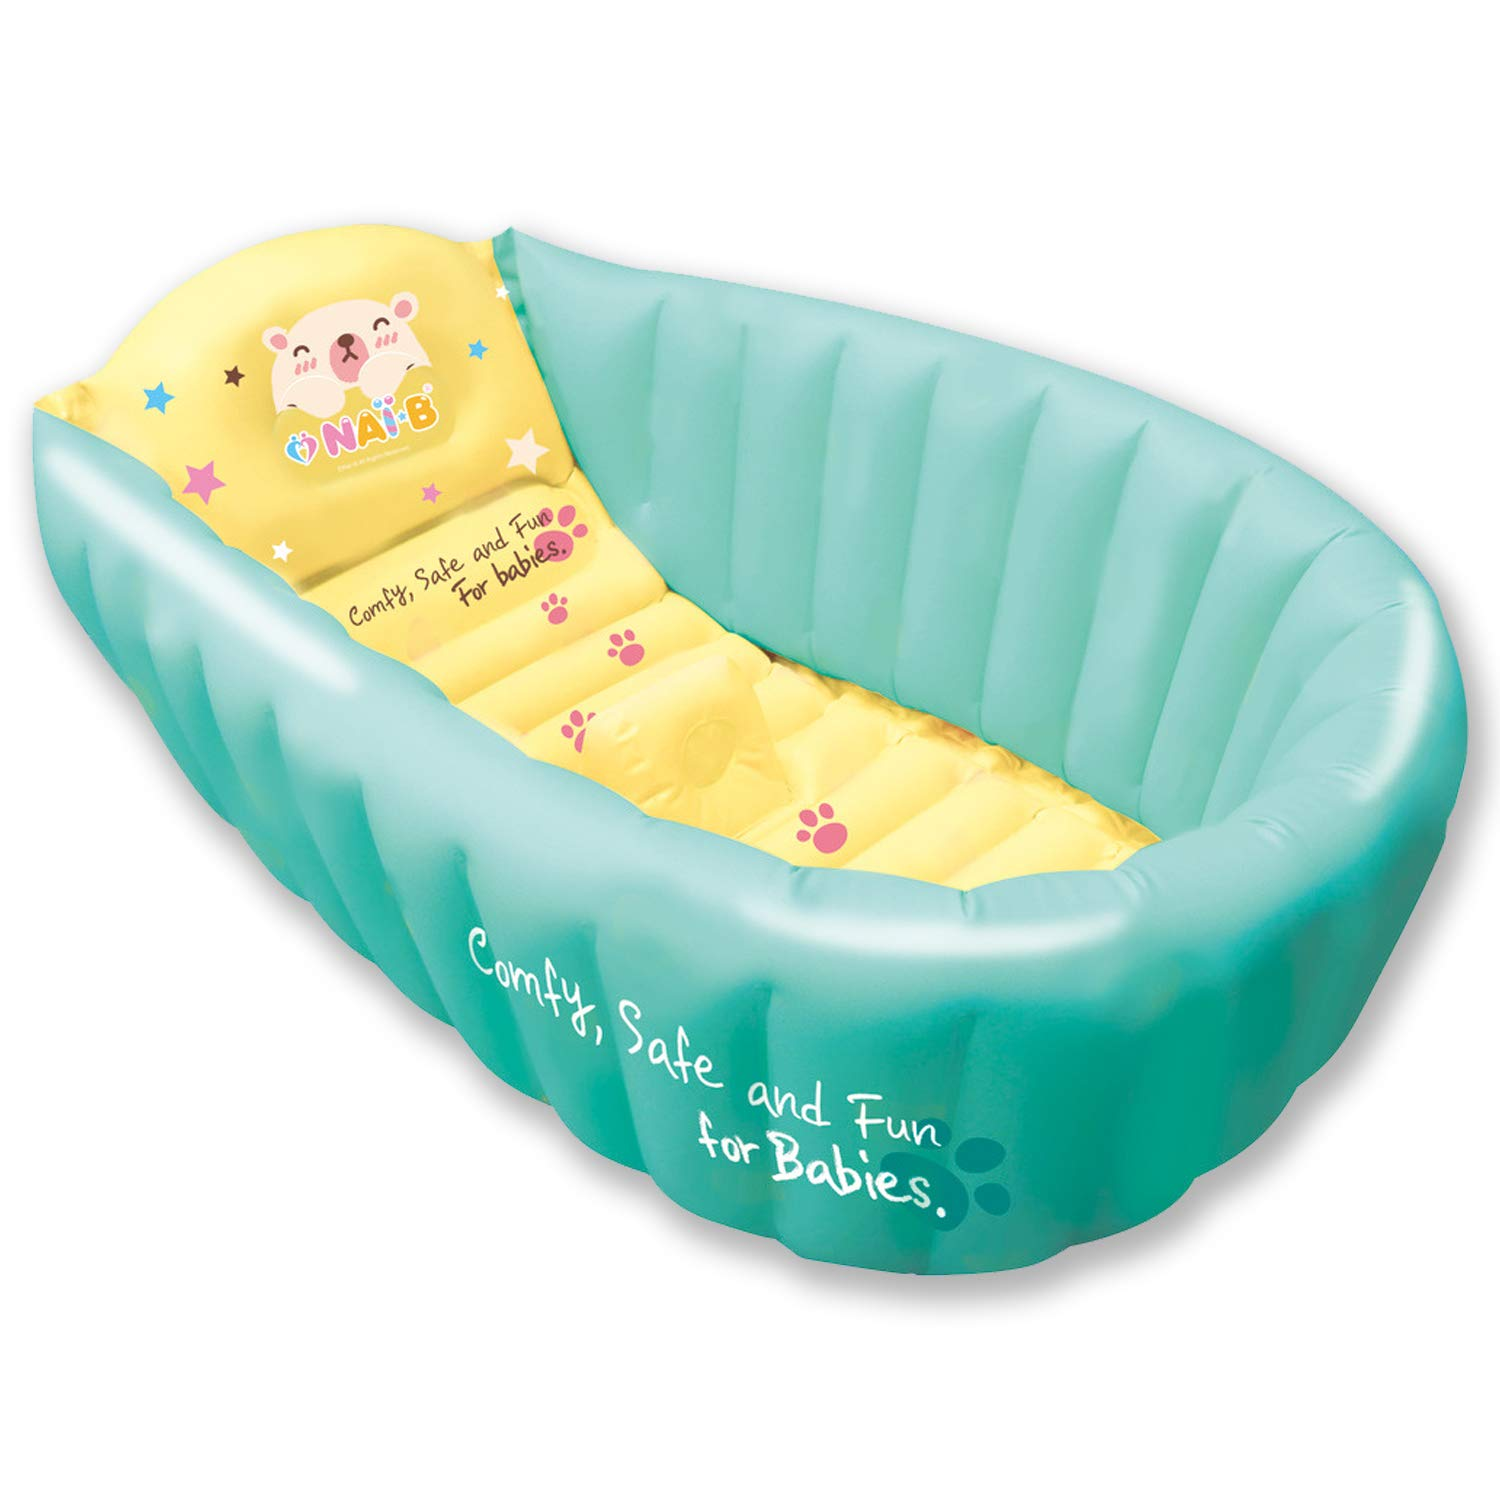 NAI-B Inflatable Baby Bath Tub. Portable and Foldable Bathtub for Infants and Toddlers. Safety Seat Mat Prevents Slipping [Mint] by Nai-B